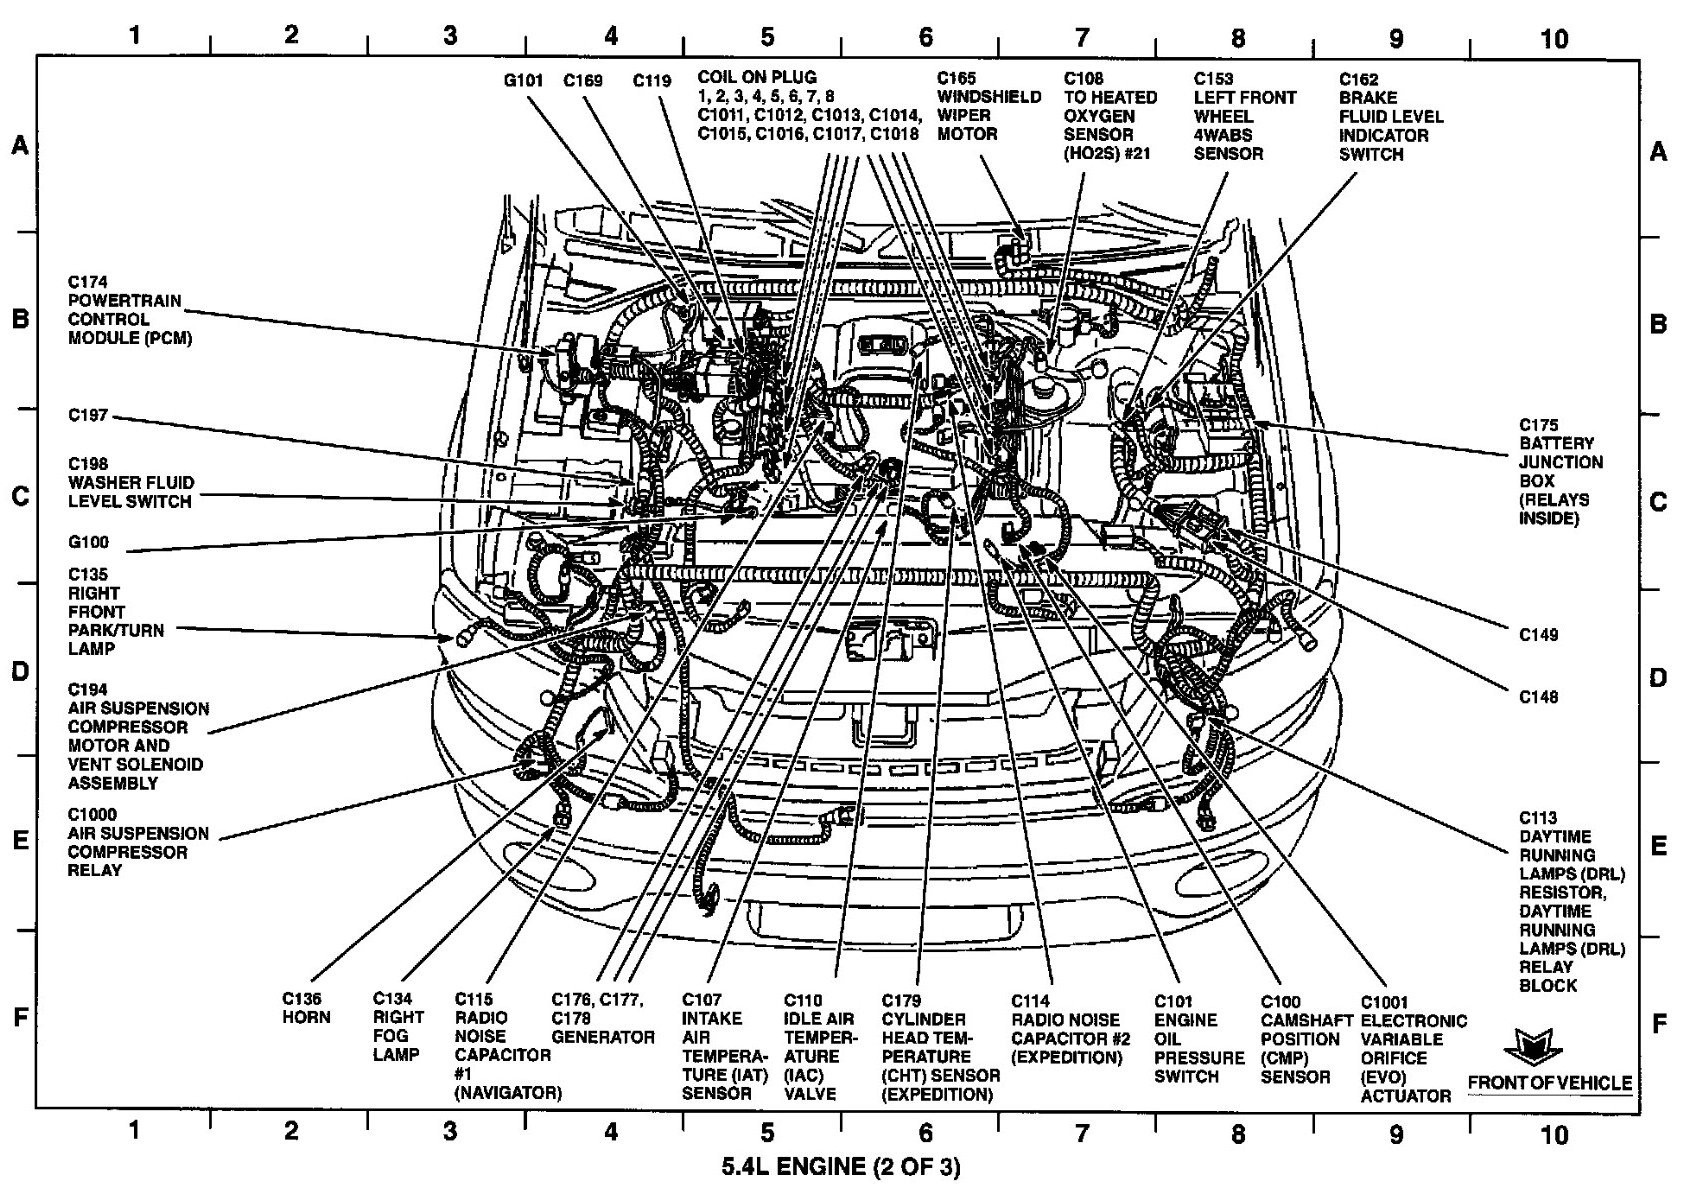 2000 Bmw 323i Vacuum Hose Diagram - Wiring Diagram